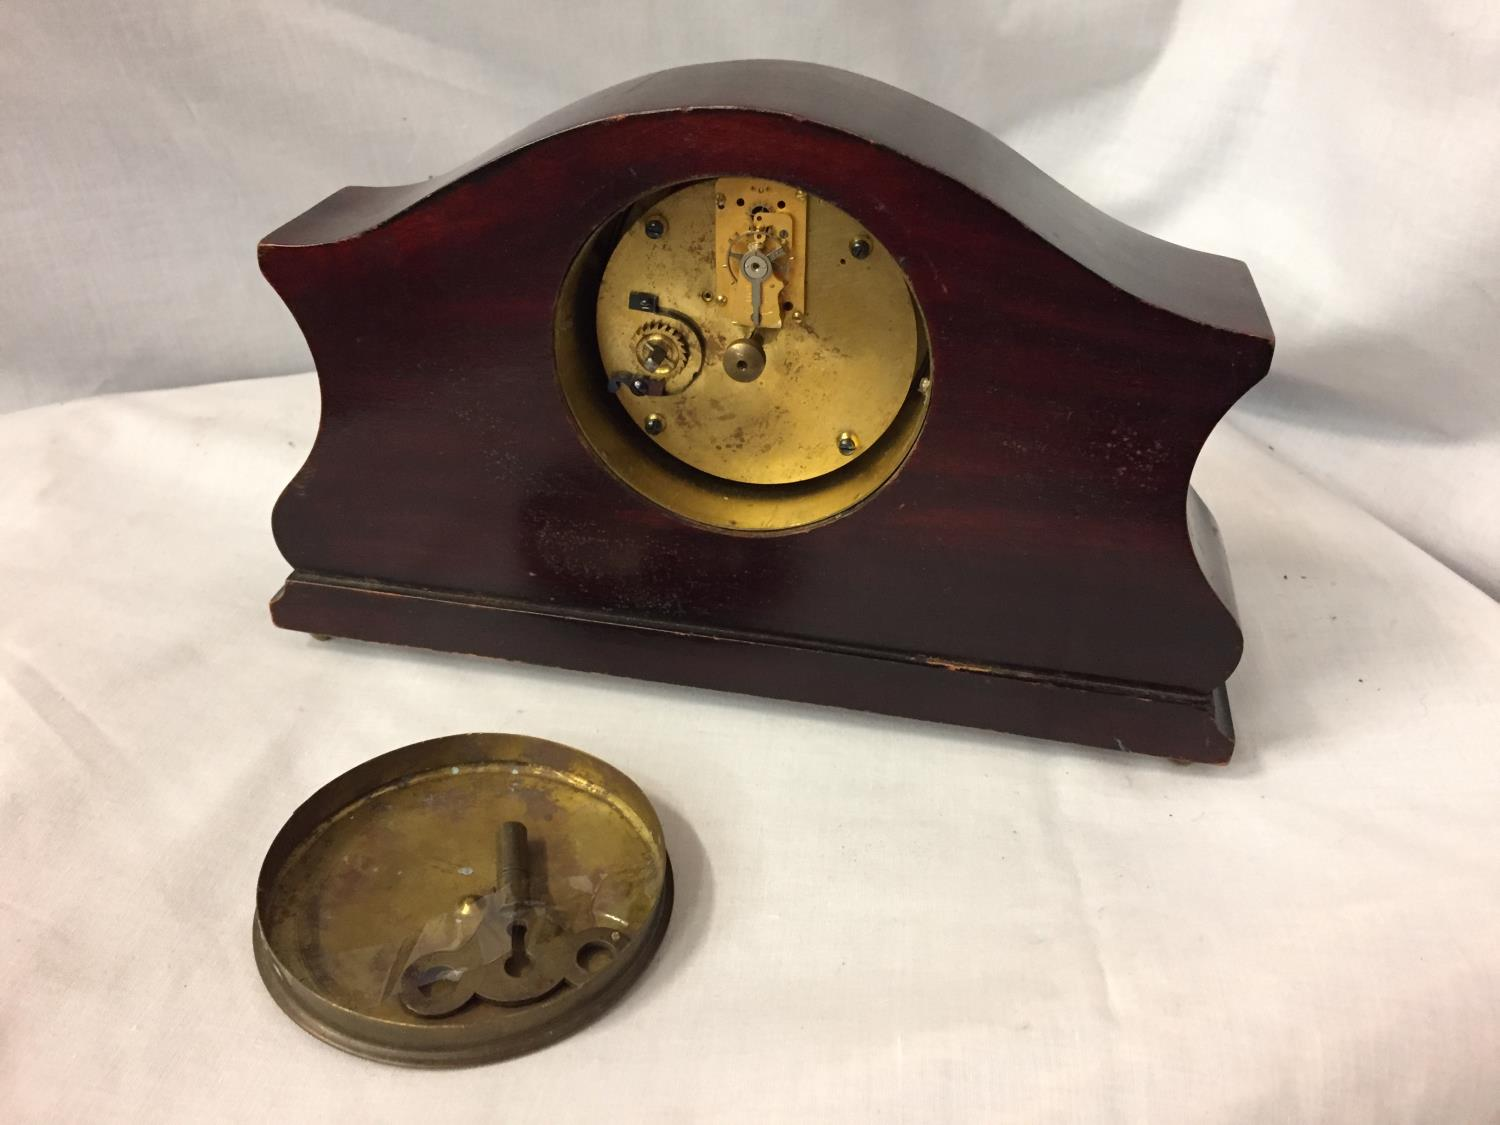 AN INLAID MAHOGANY MANTLE CLOCK WITH GILDED CENTRE FACE AND ENAMEL DIAL - Image 4 of 4